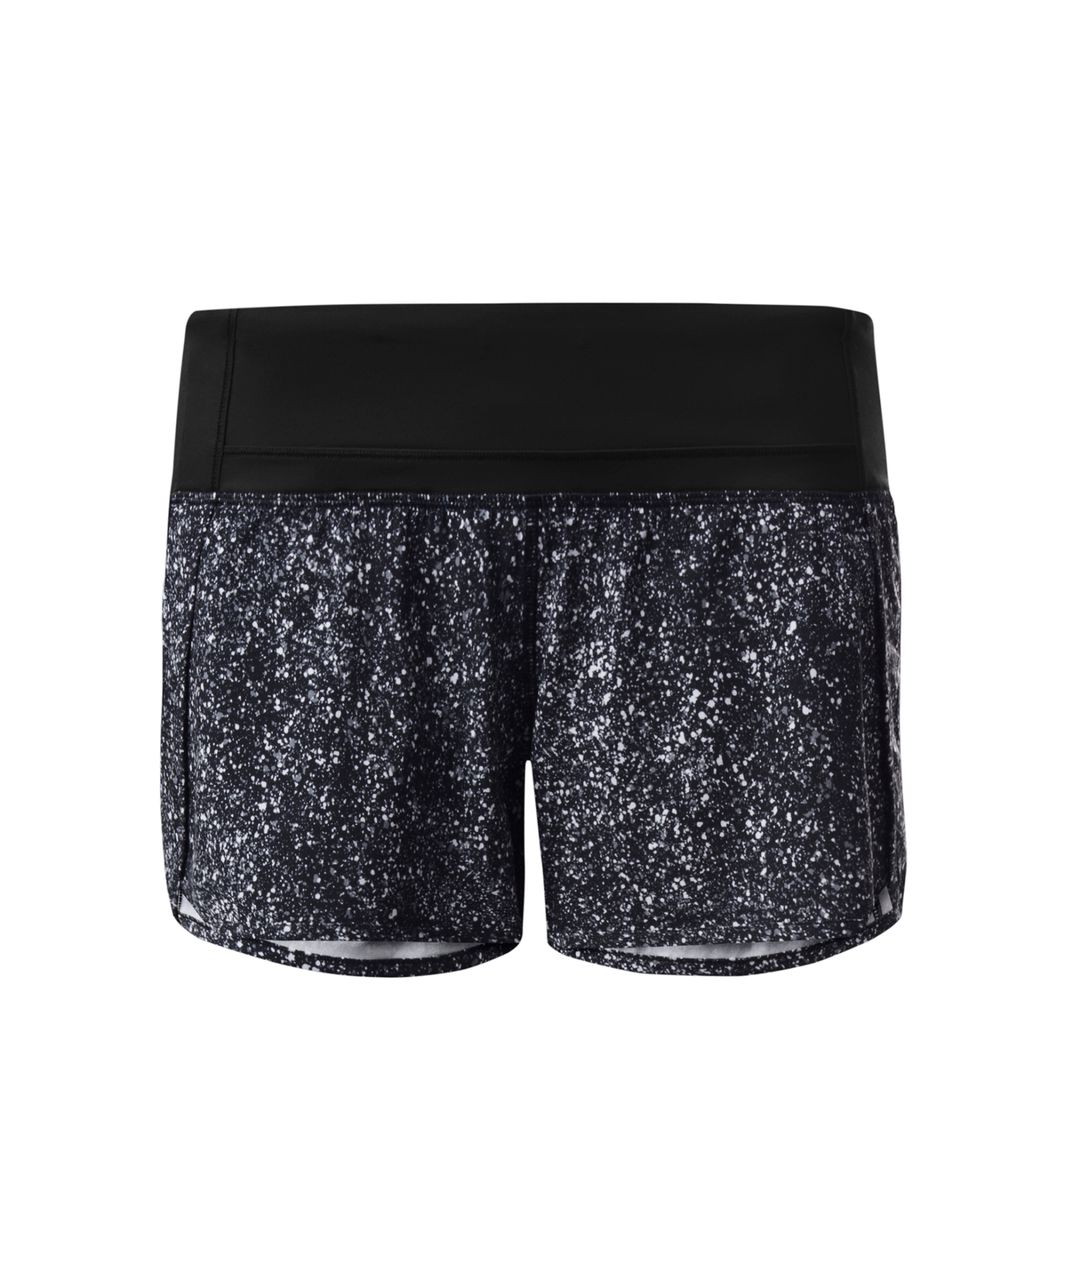 Lululemon Run Times Short - Mini Splatter White Black